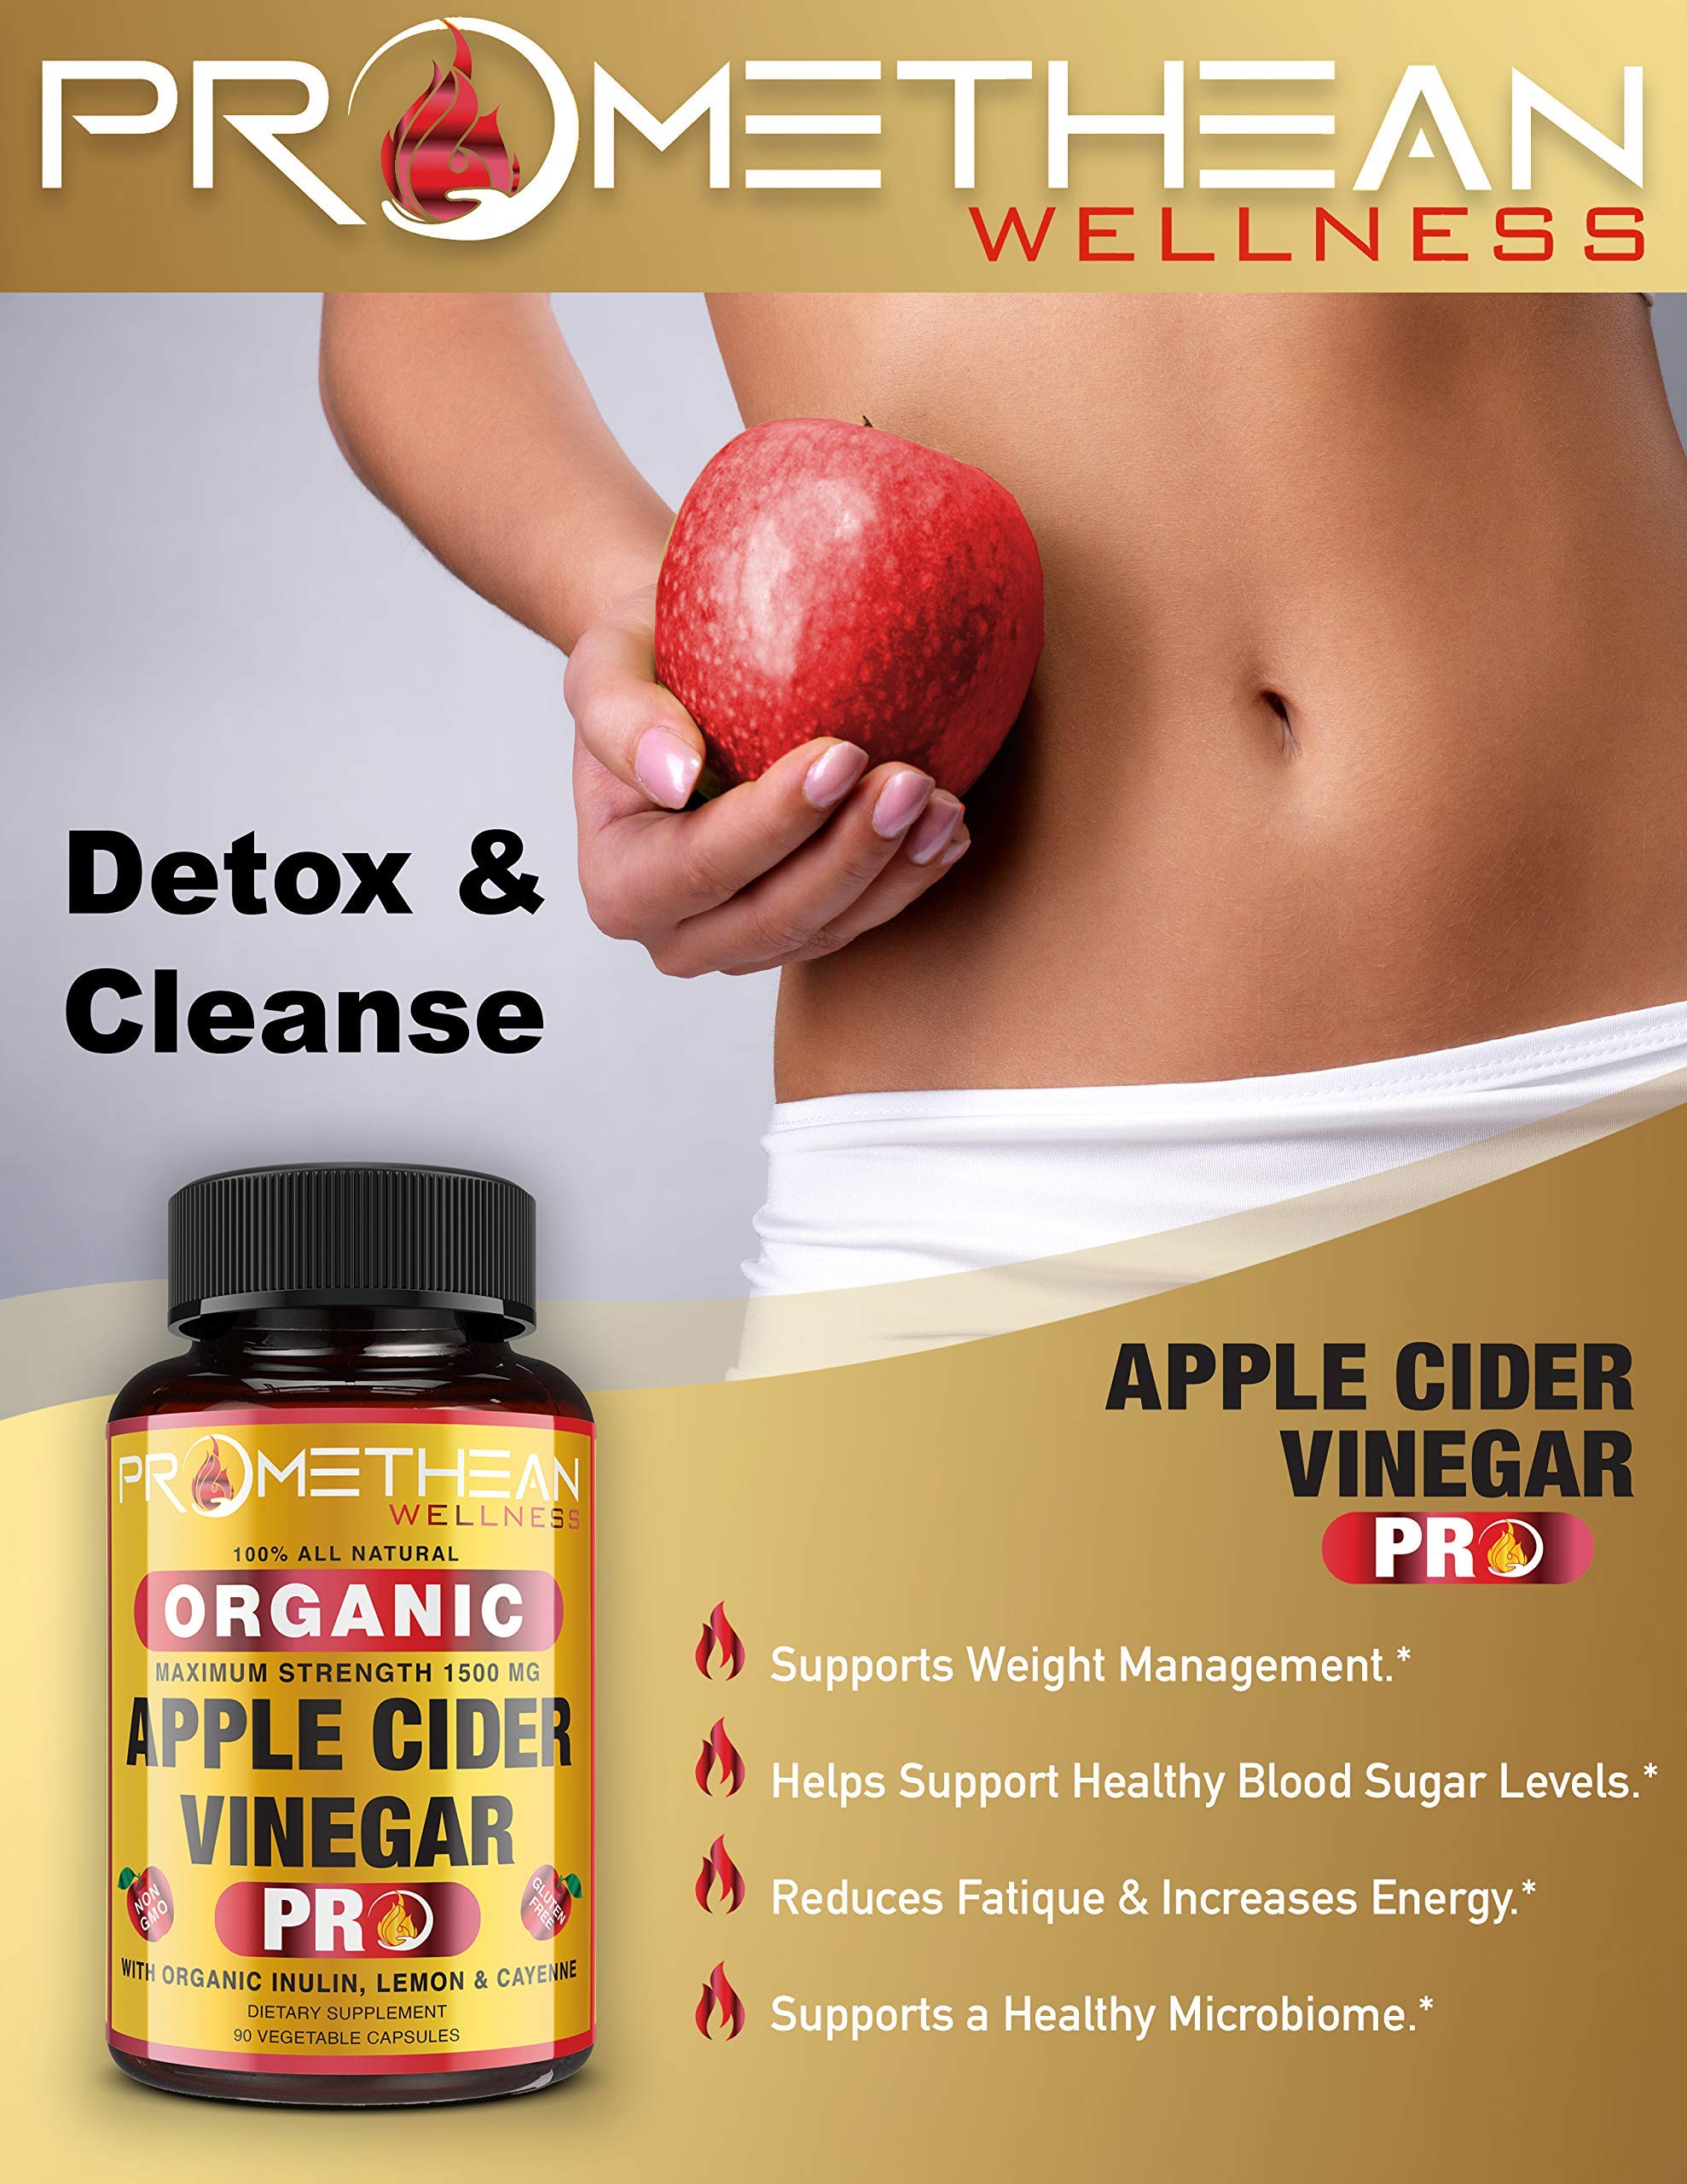 Organic Apple Cider Vinegar Capsules ACV PRO Diet Pills Detox Cleanse for Weight Loss Raw Unfiltered With Mother Powder Supplements Tablets Vitamins Cayenne Pepper Inulin Prebiotics Lemon 1500mg 90 ct by Promethean Wellness LLC (Image #3)